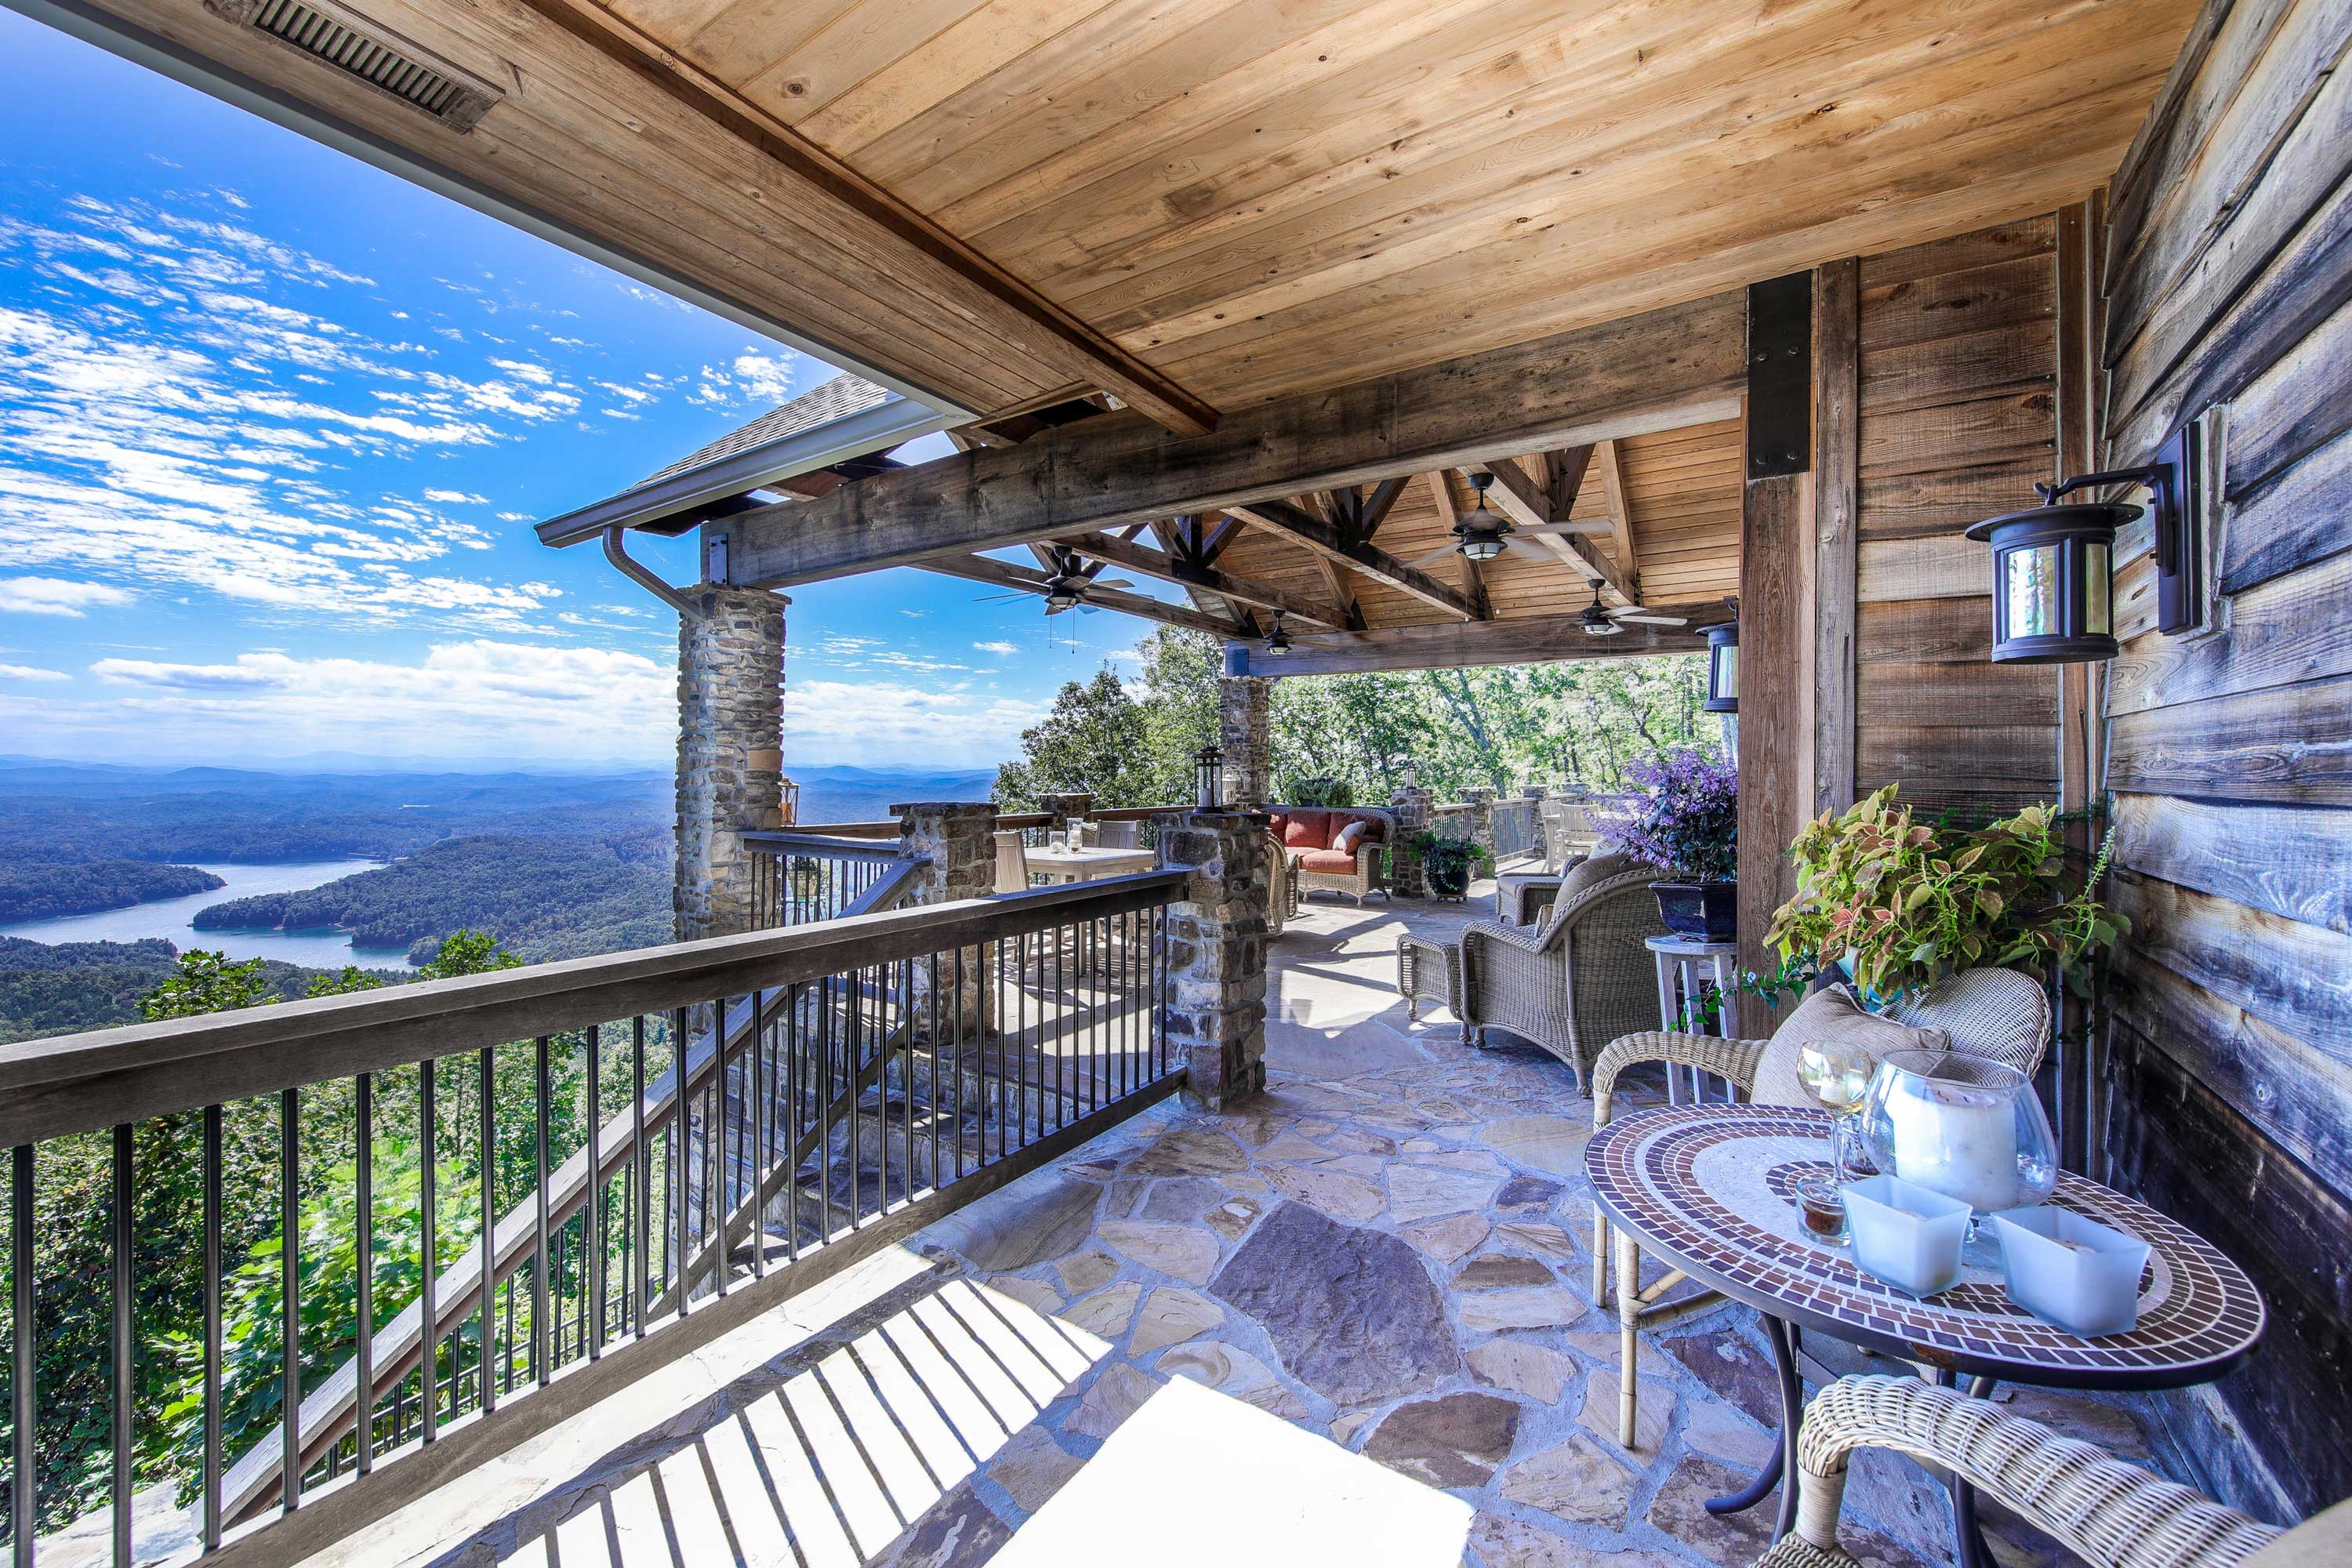 This mountain retreat commands 137 pristine acres with jaw-dropping views of Lake Hiwassee and the Appalachians.